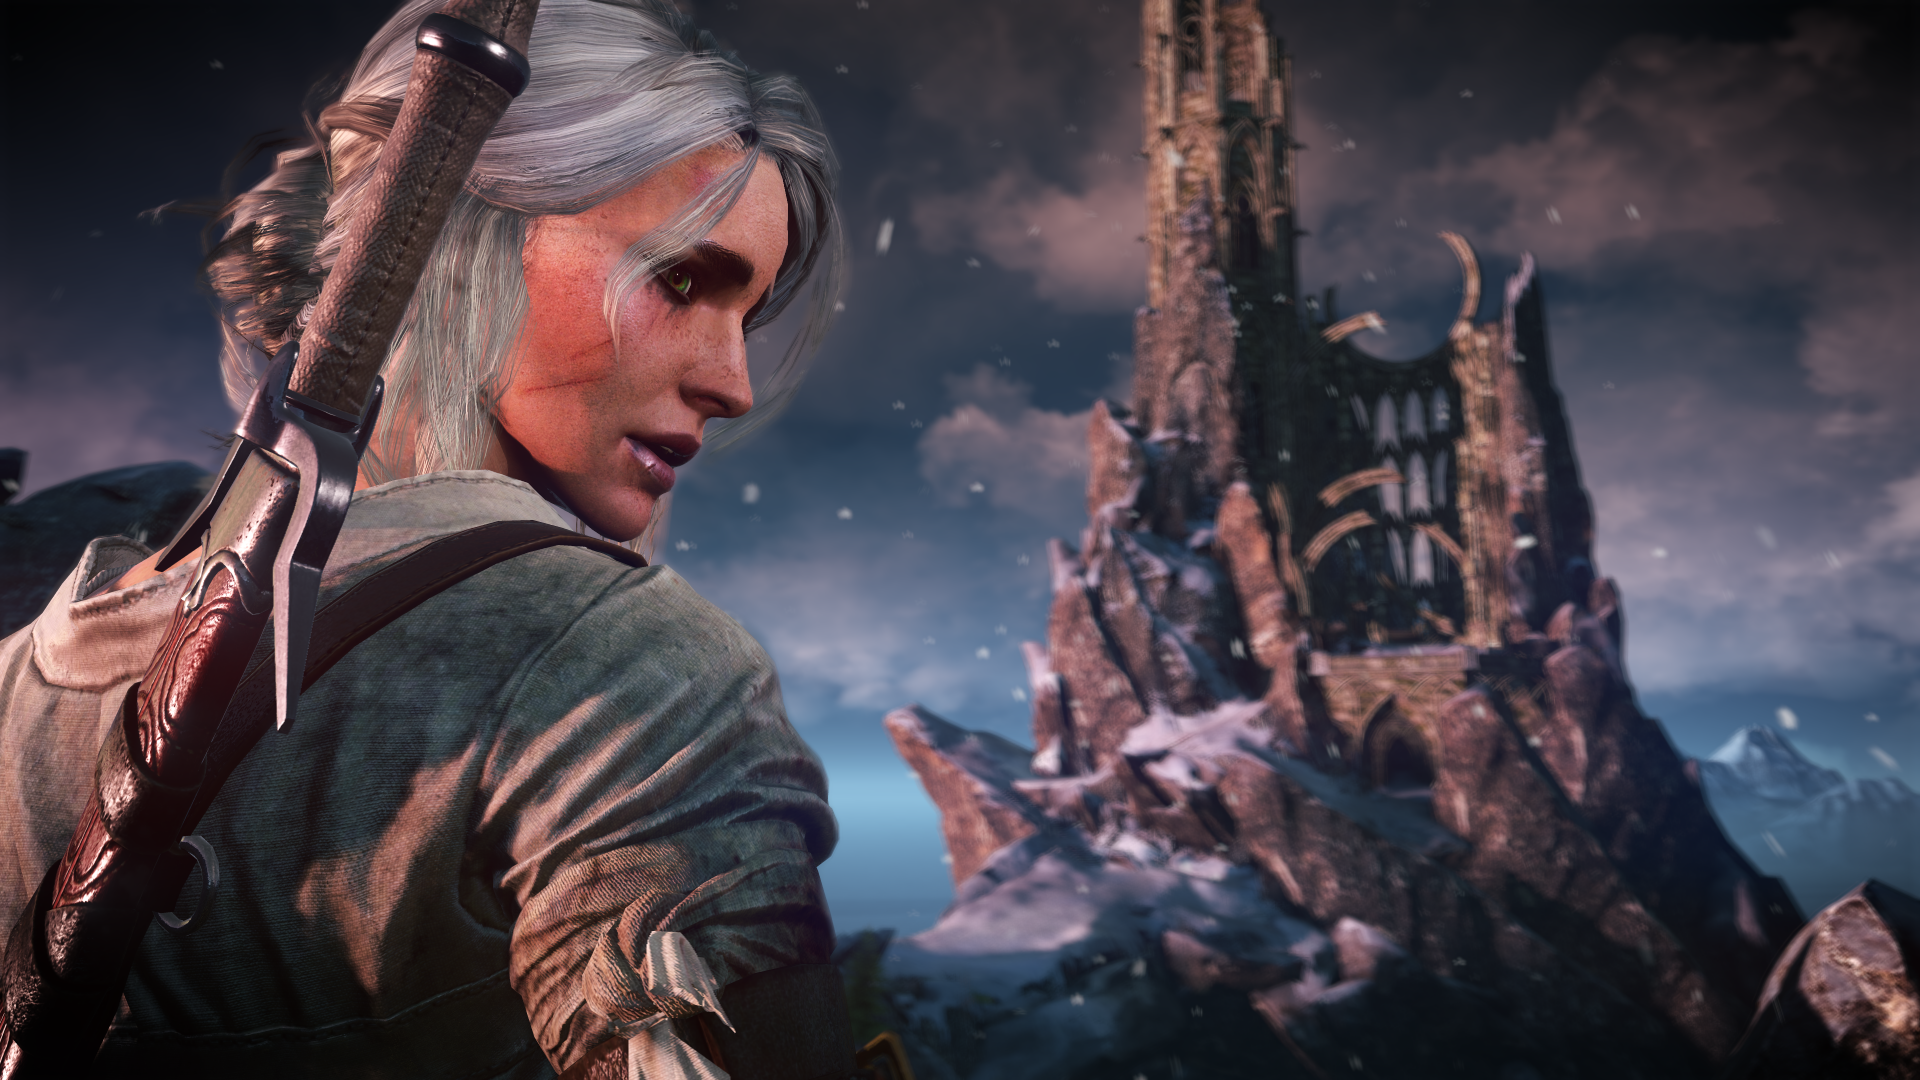 Ciri Witcher 3 Screen 1920x1080 Wallpaper Teahub Io